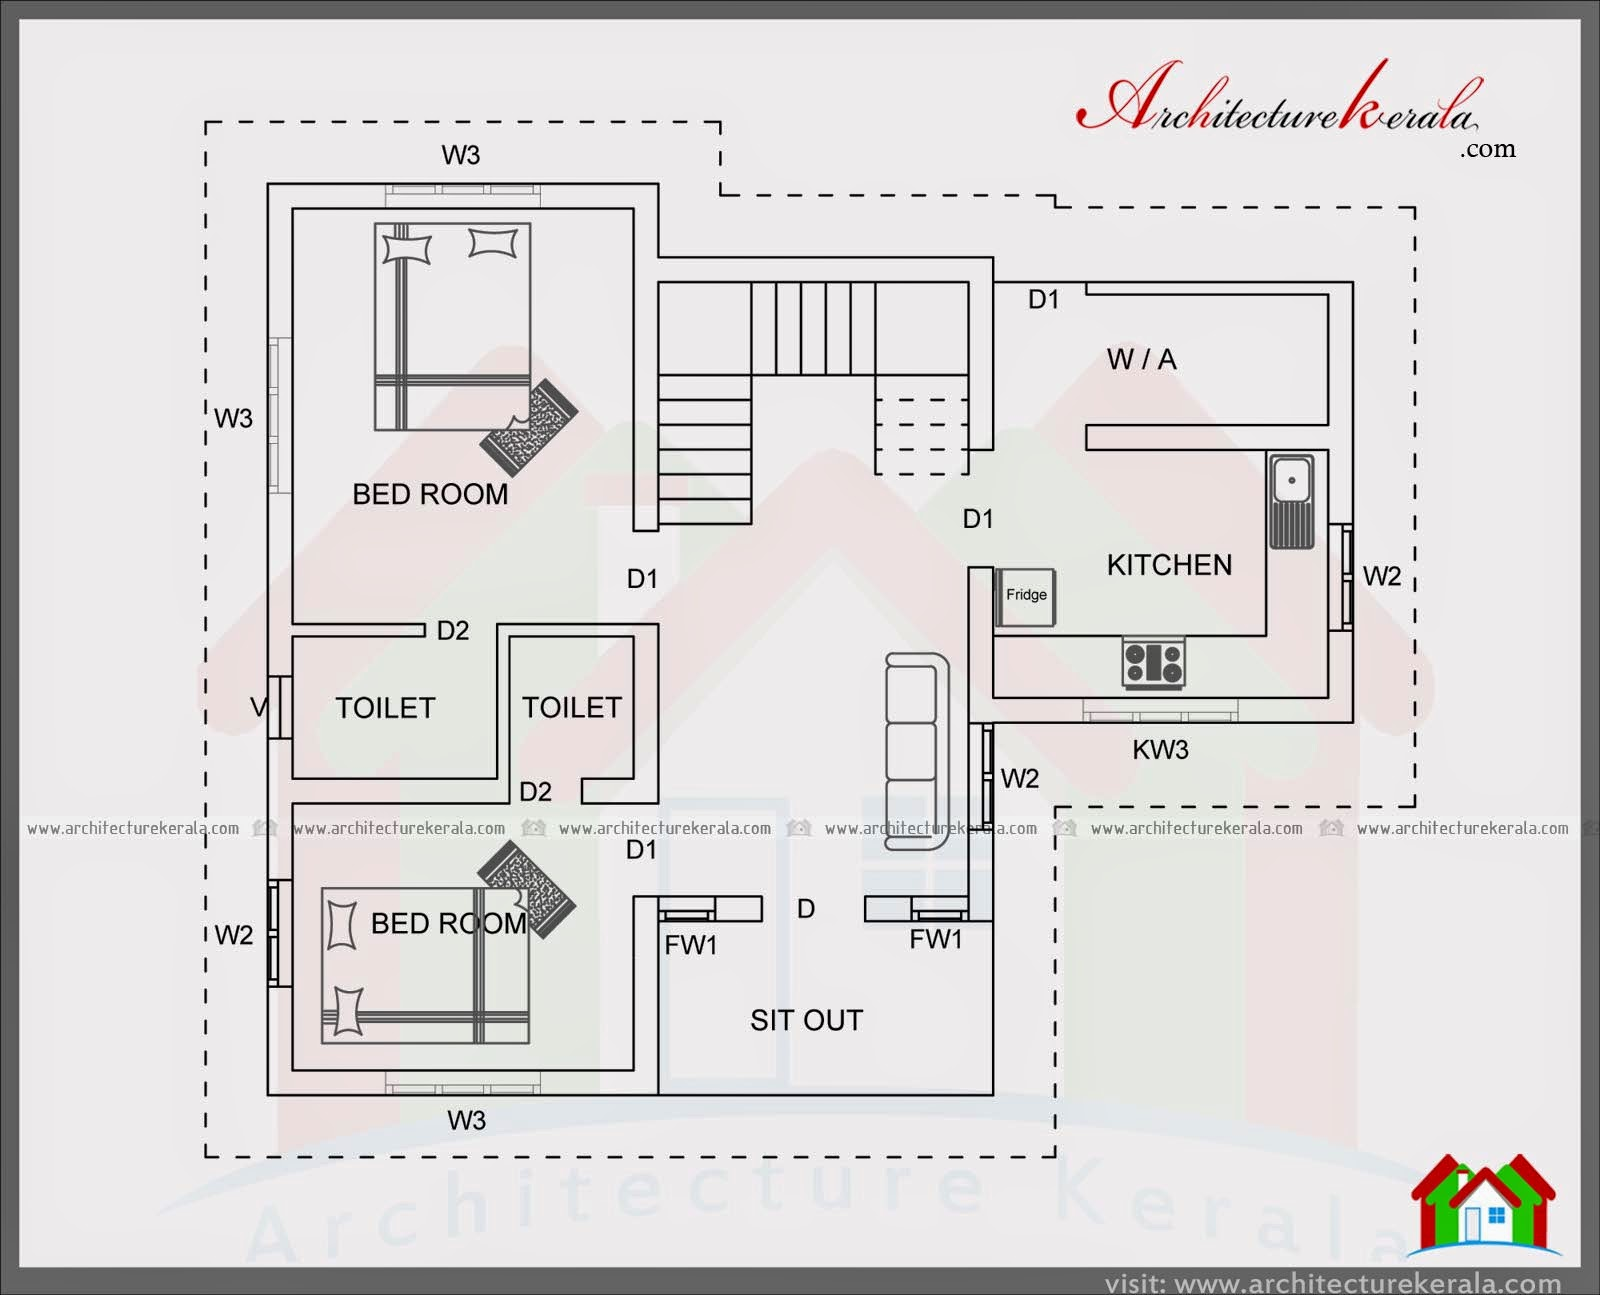 4 bedroom house plan in 1400 square feet architecture kerala for Kerala two bedroom house plans